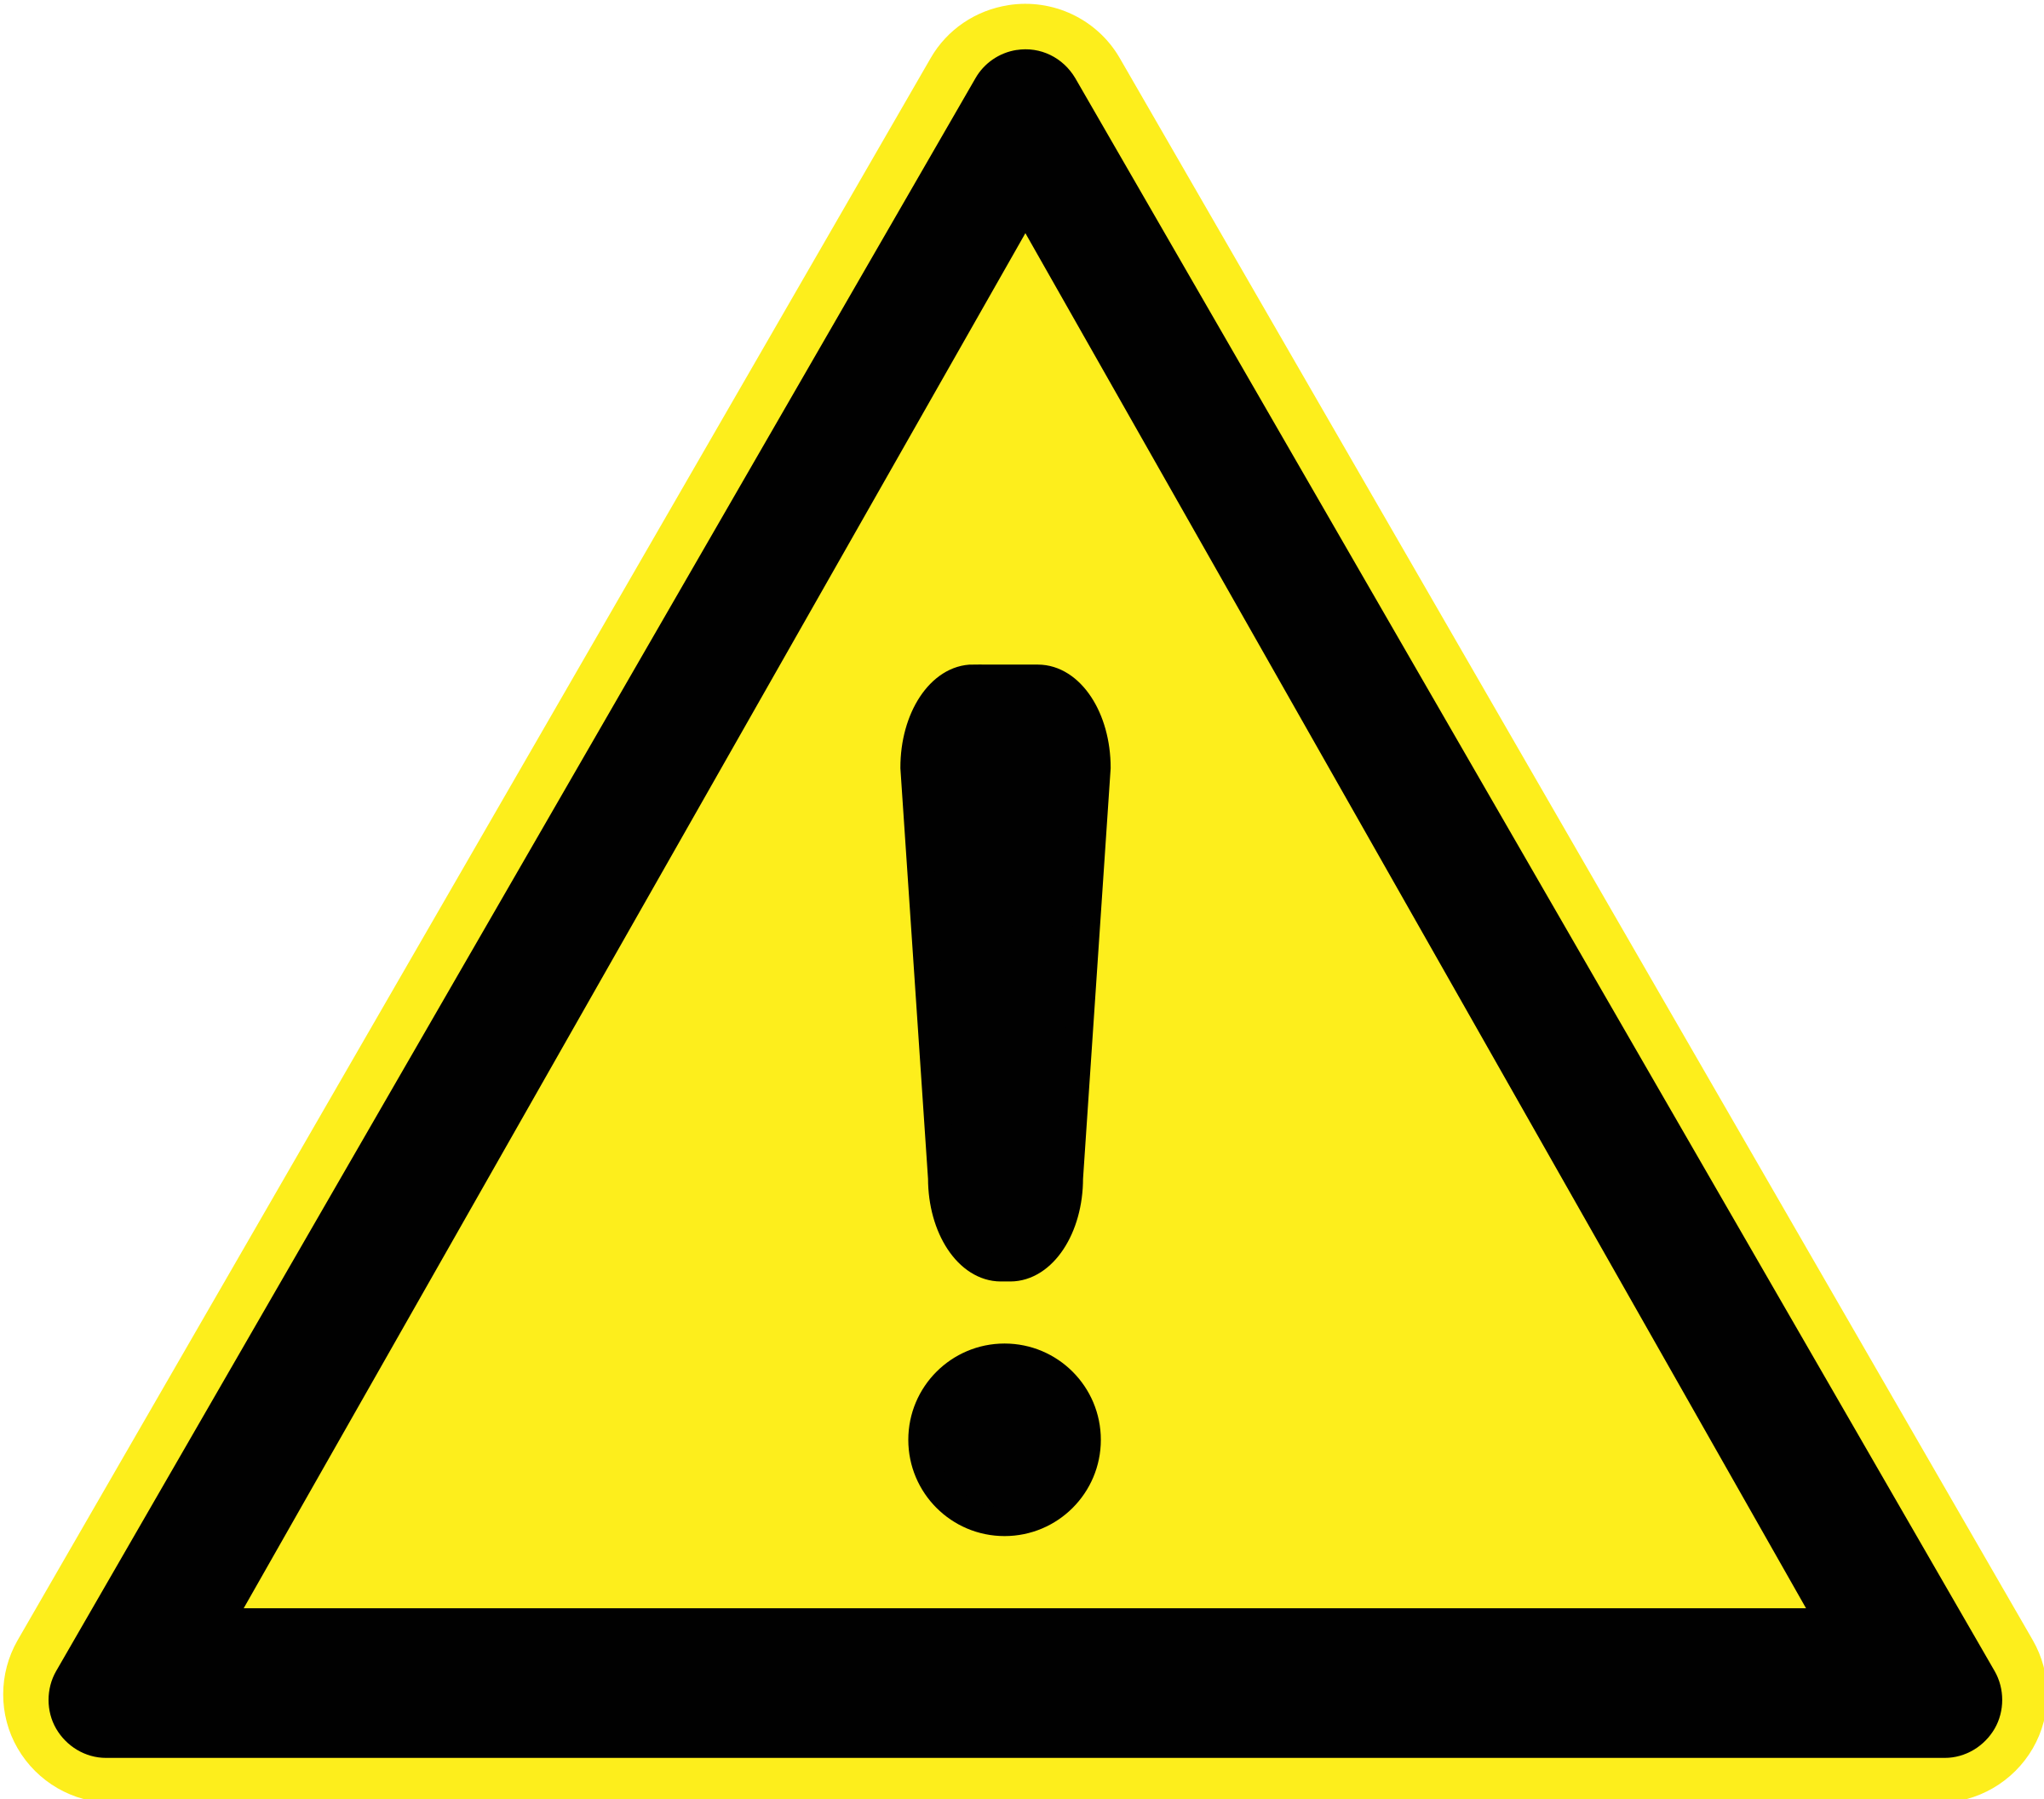 Signs Hazard Warning - Generic by h0us3s